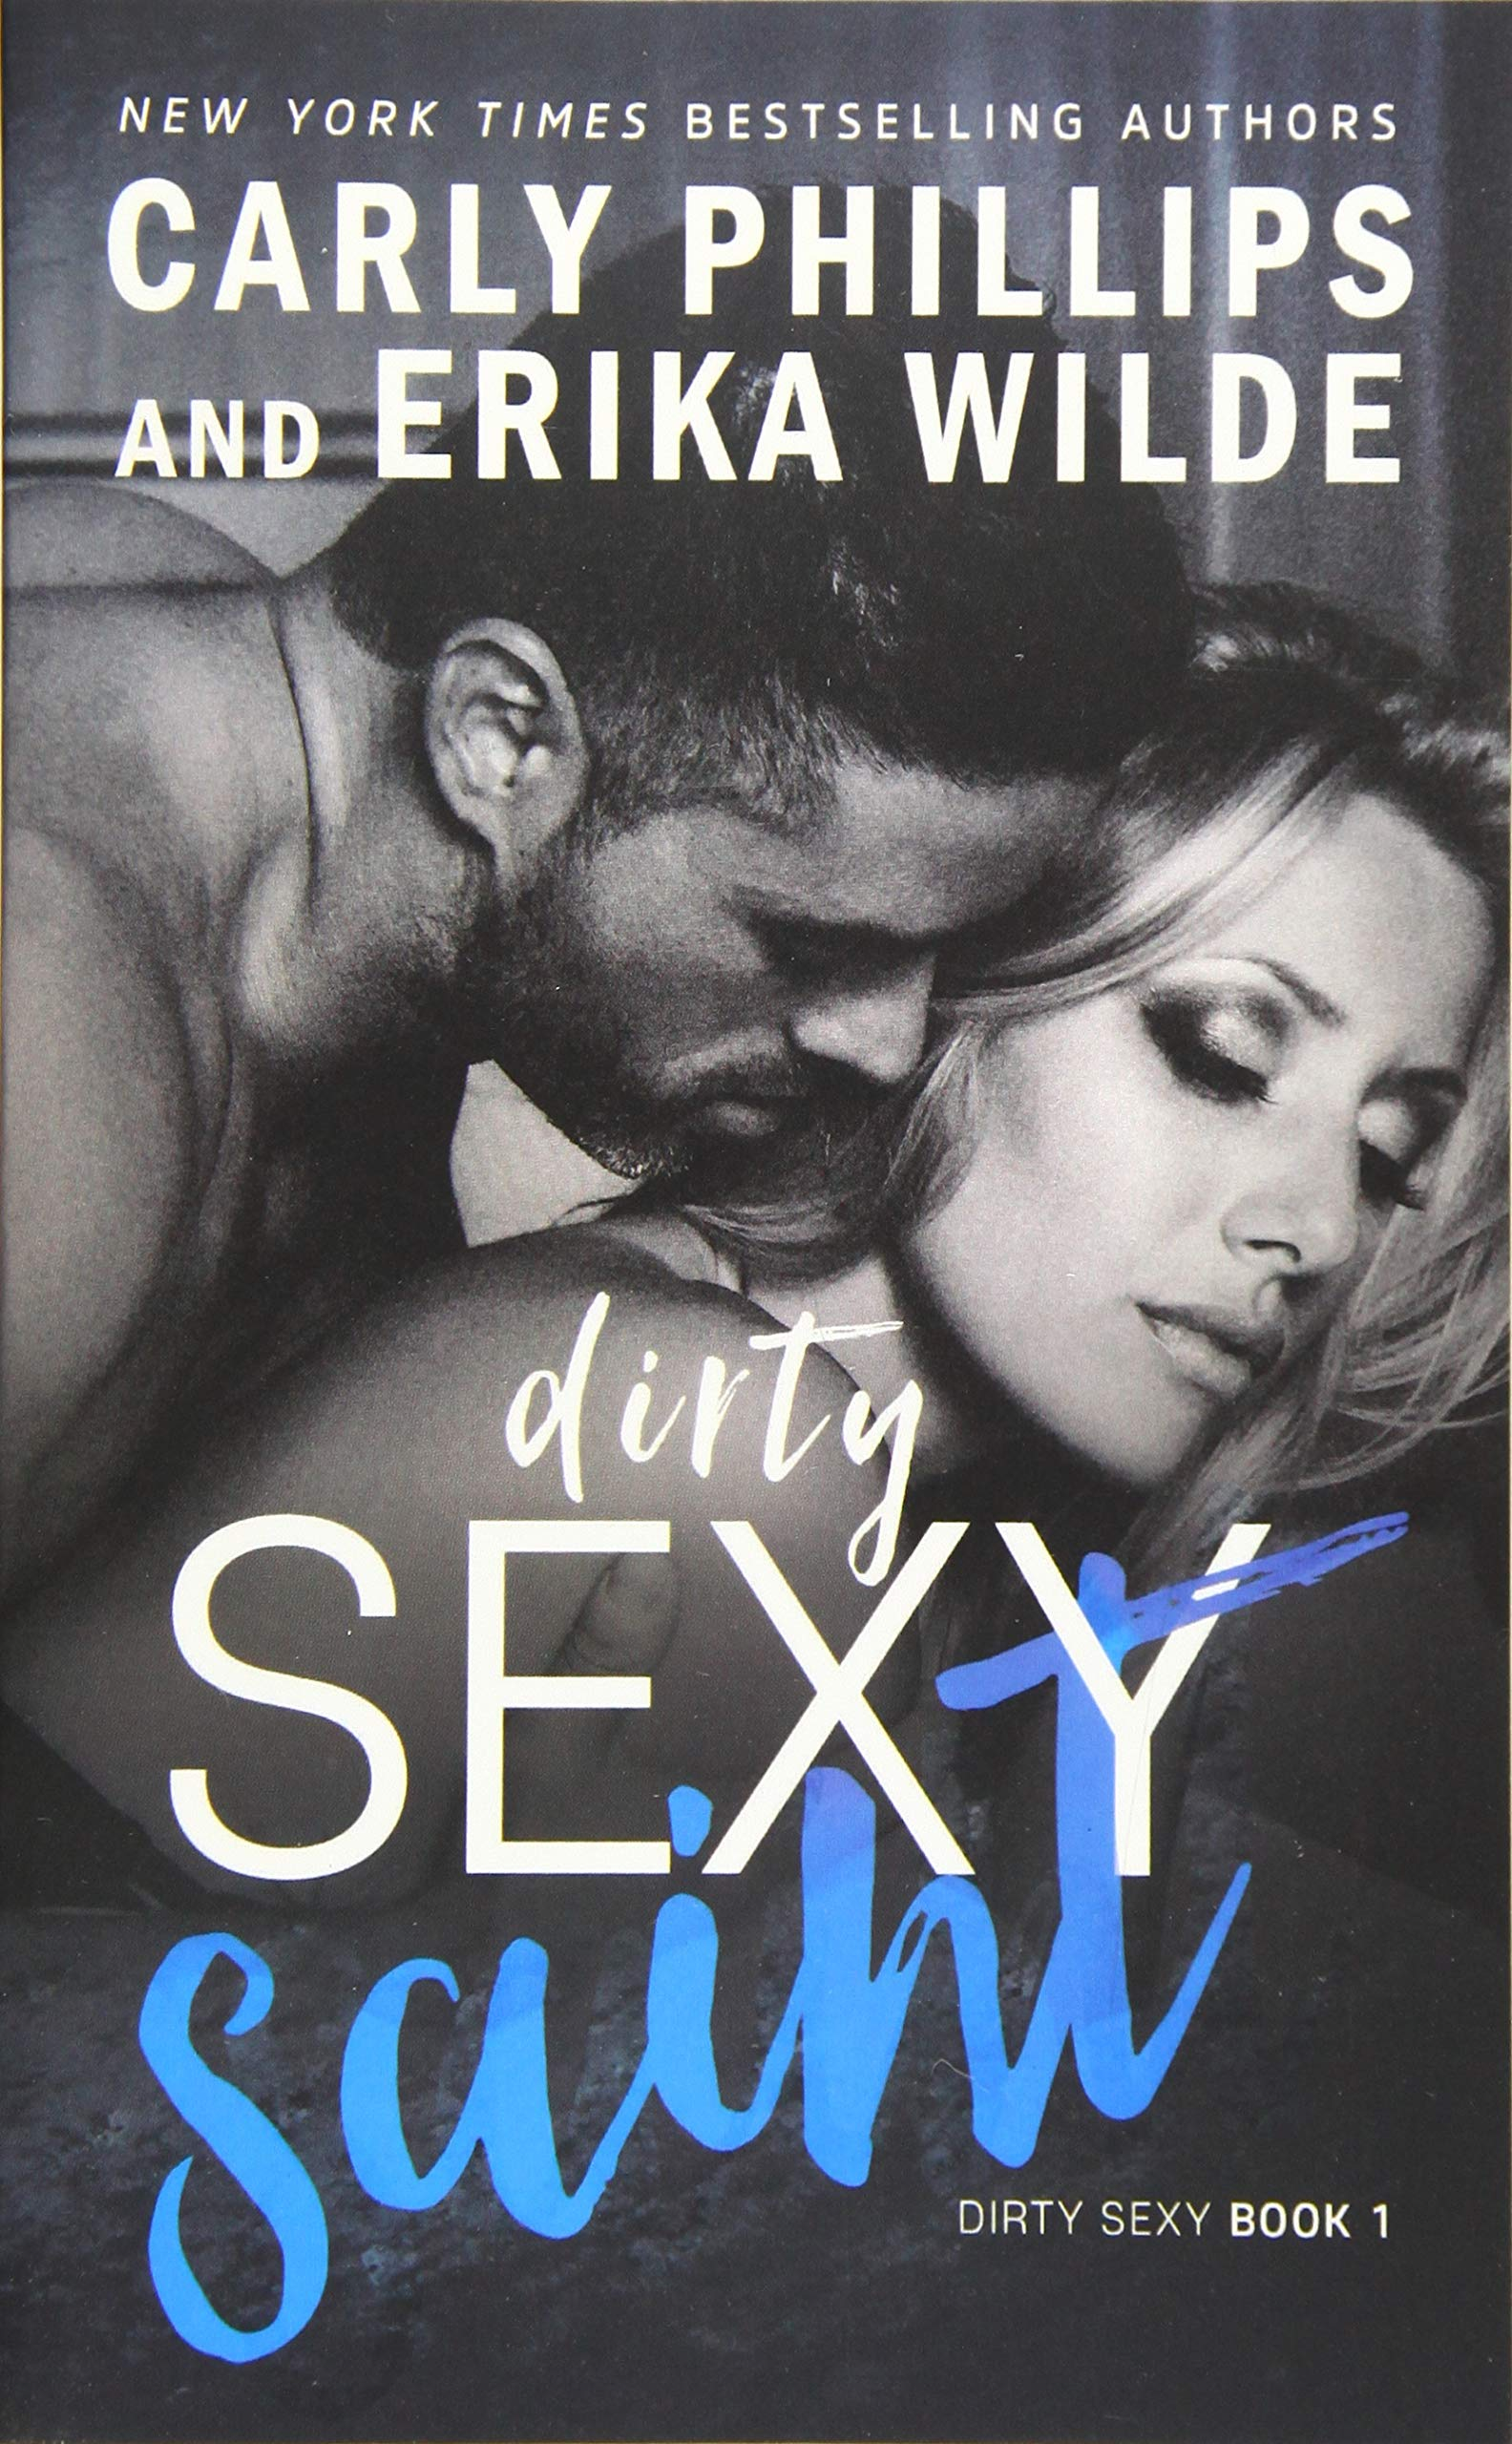 Dirty Sexy Saint (Dirty Sexy Series): Carly Phillips: 9781942288671